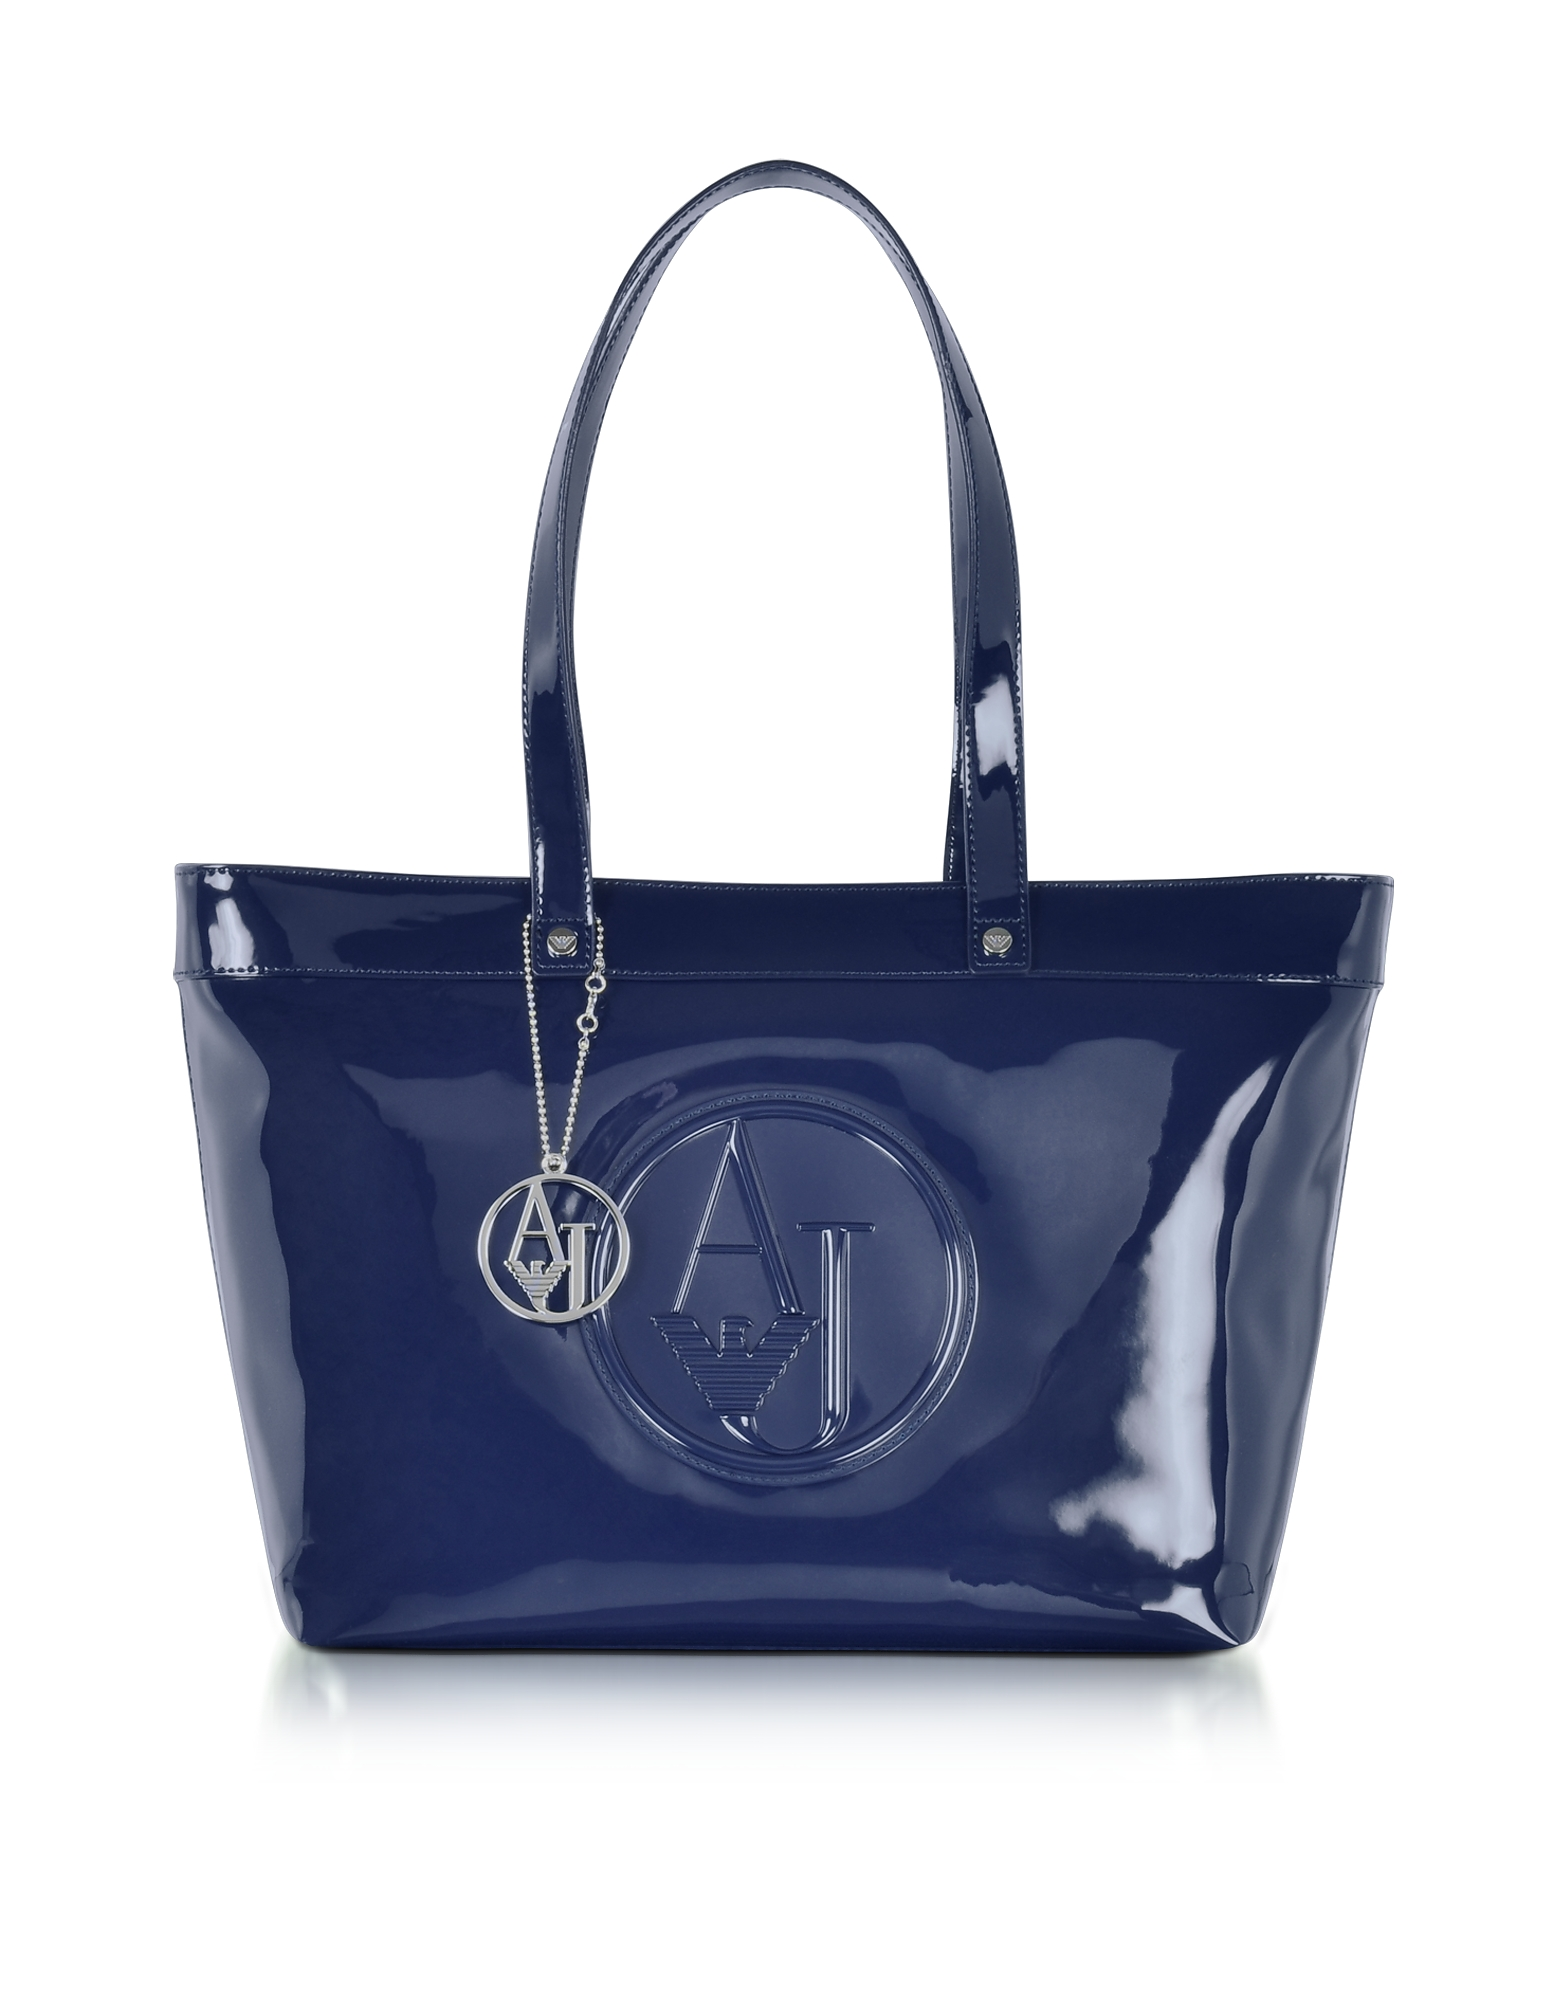 Armani Jeans Handbags, Midnight Blue Eco Patent Leather Large Tote Bag